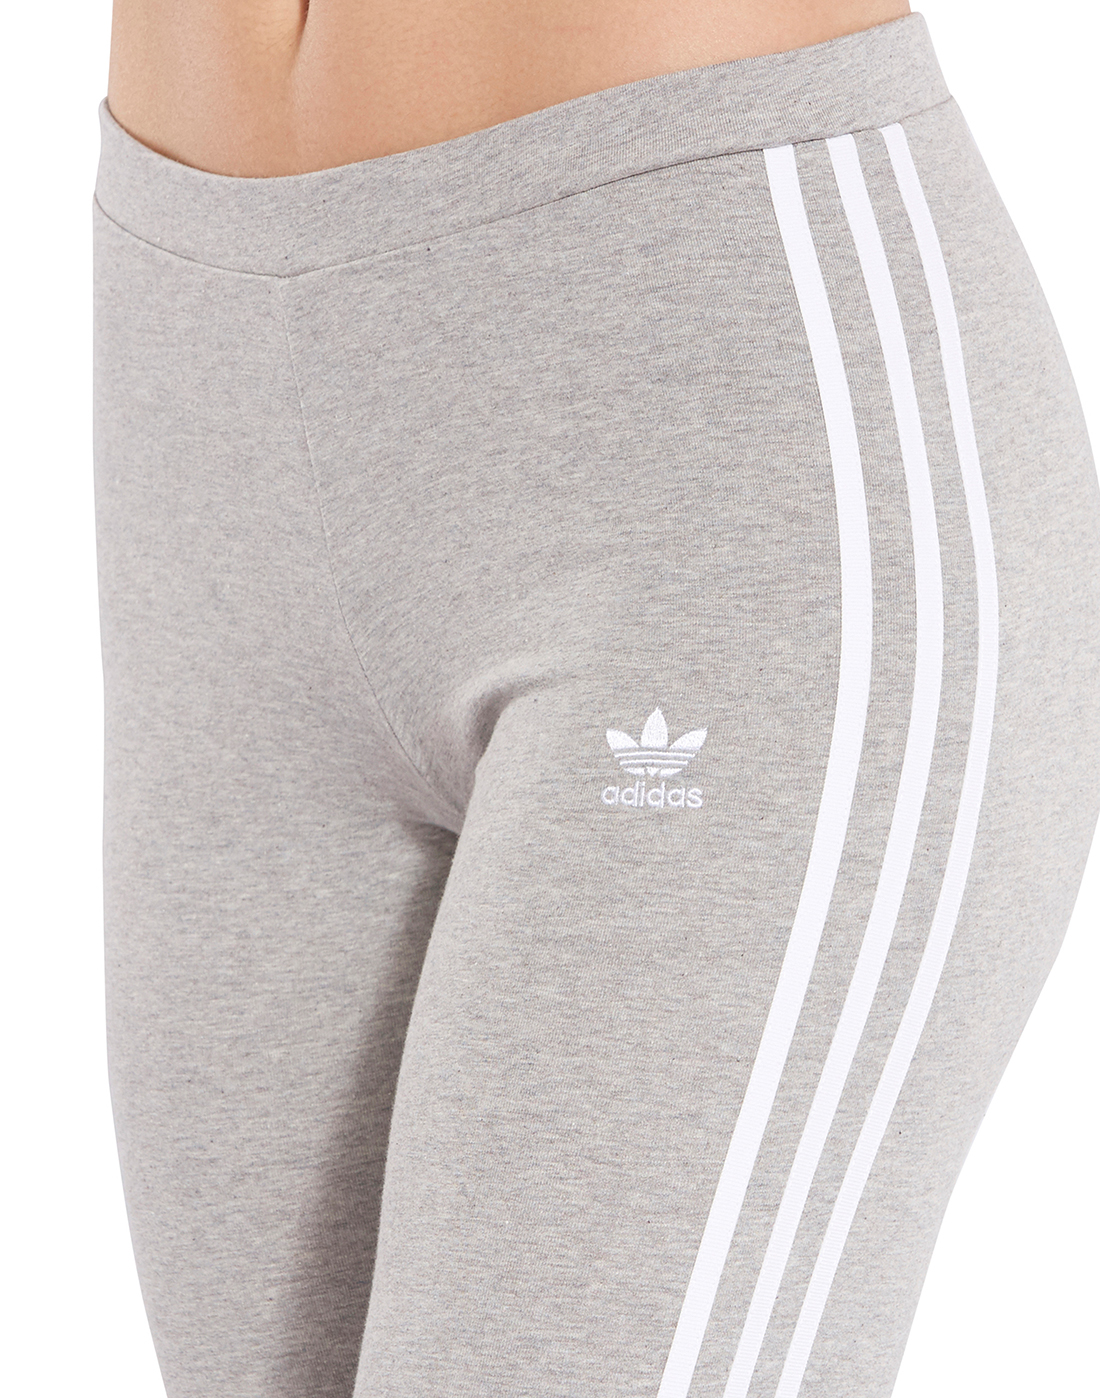 3ddfd516e Women's Grey adidas Originals 3 Stripe Leggings | Life Style Sports